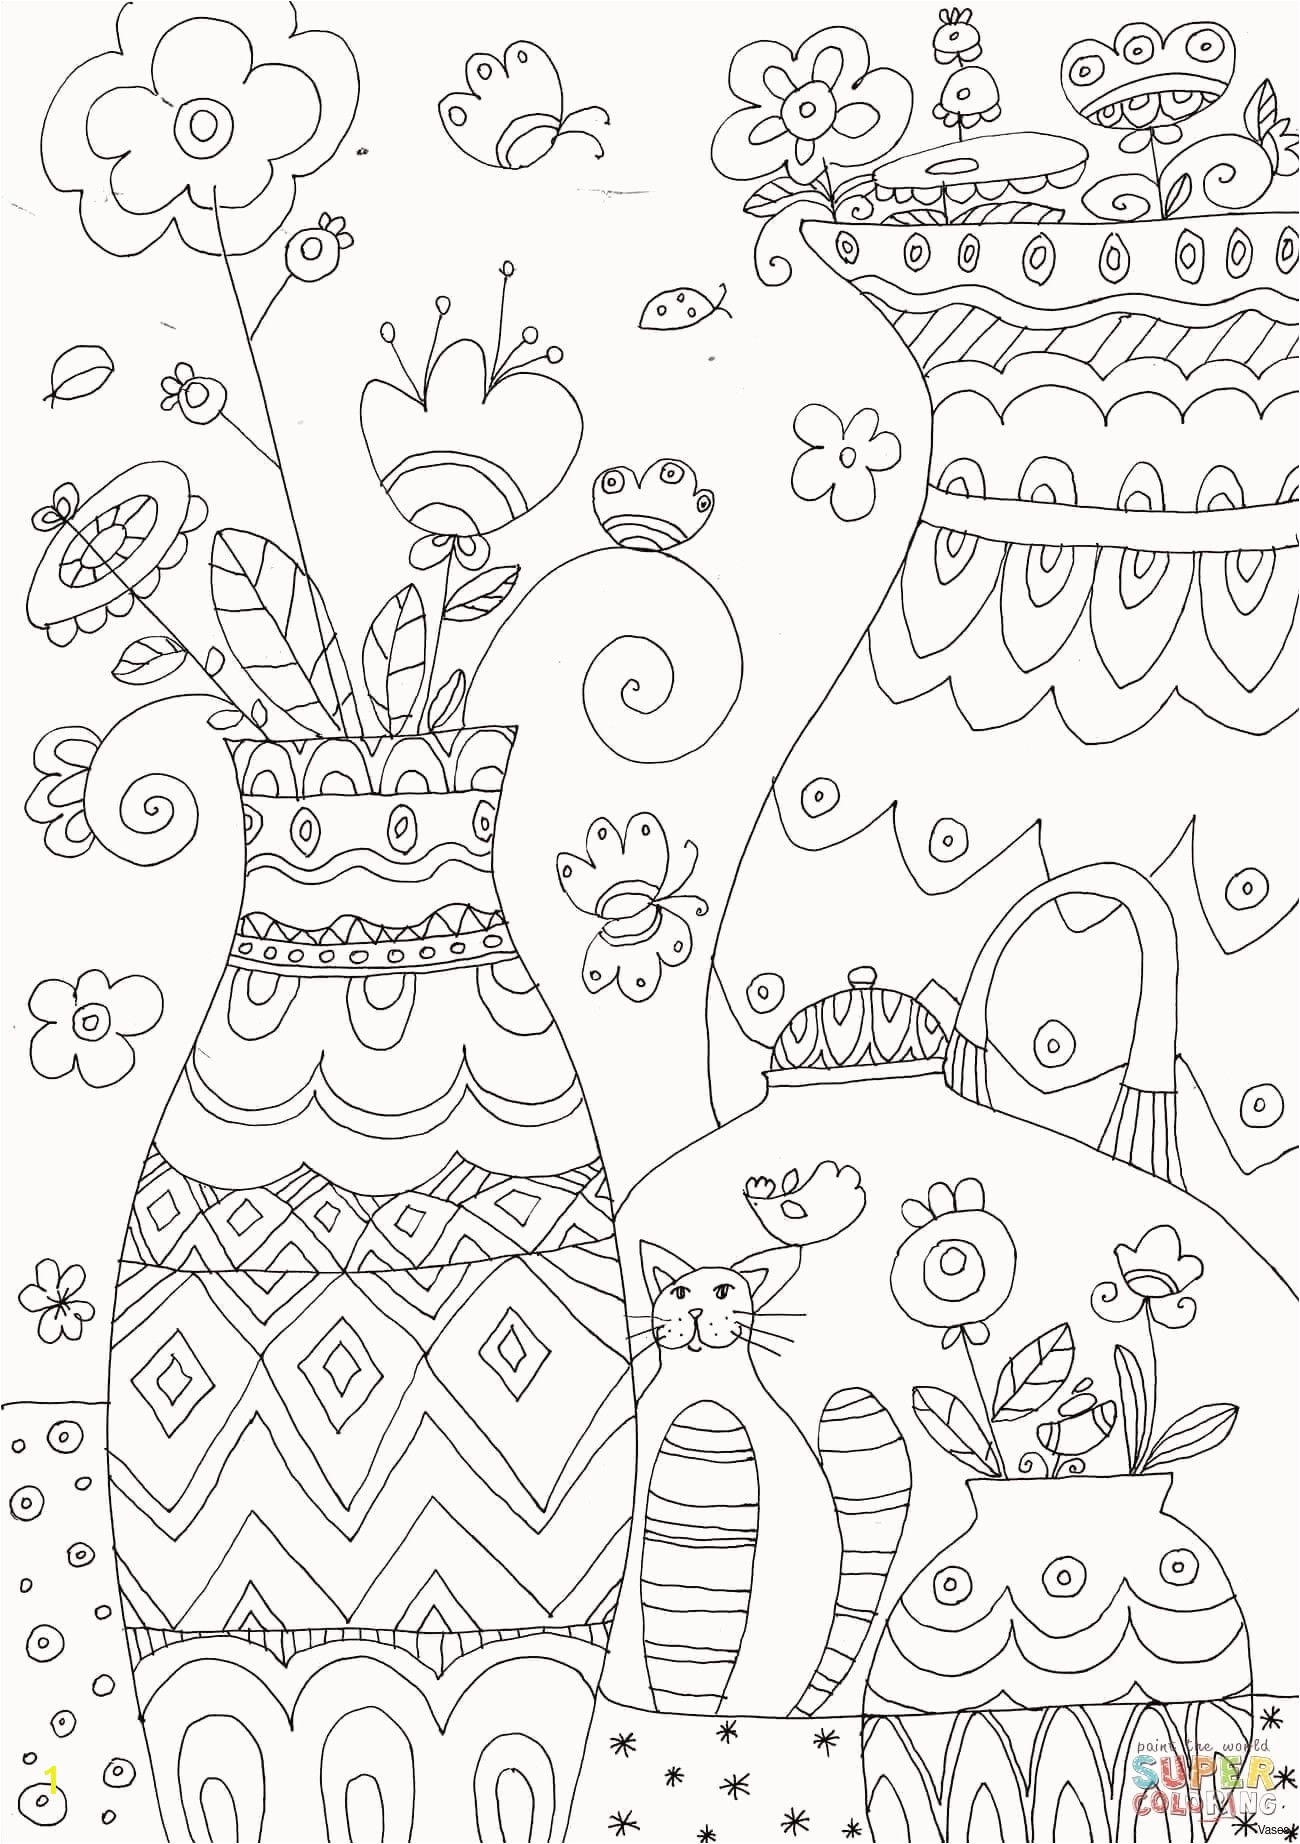 Division Coloring Pages Beautiful tools Coloring Pages Elegant Cool Printable Cds 0d – Fun Time